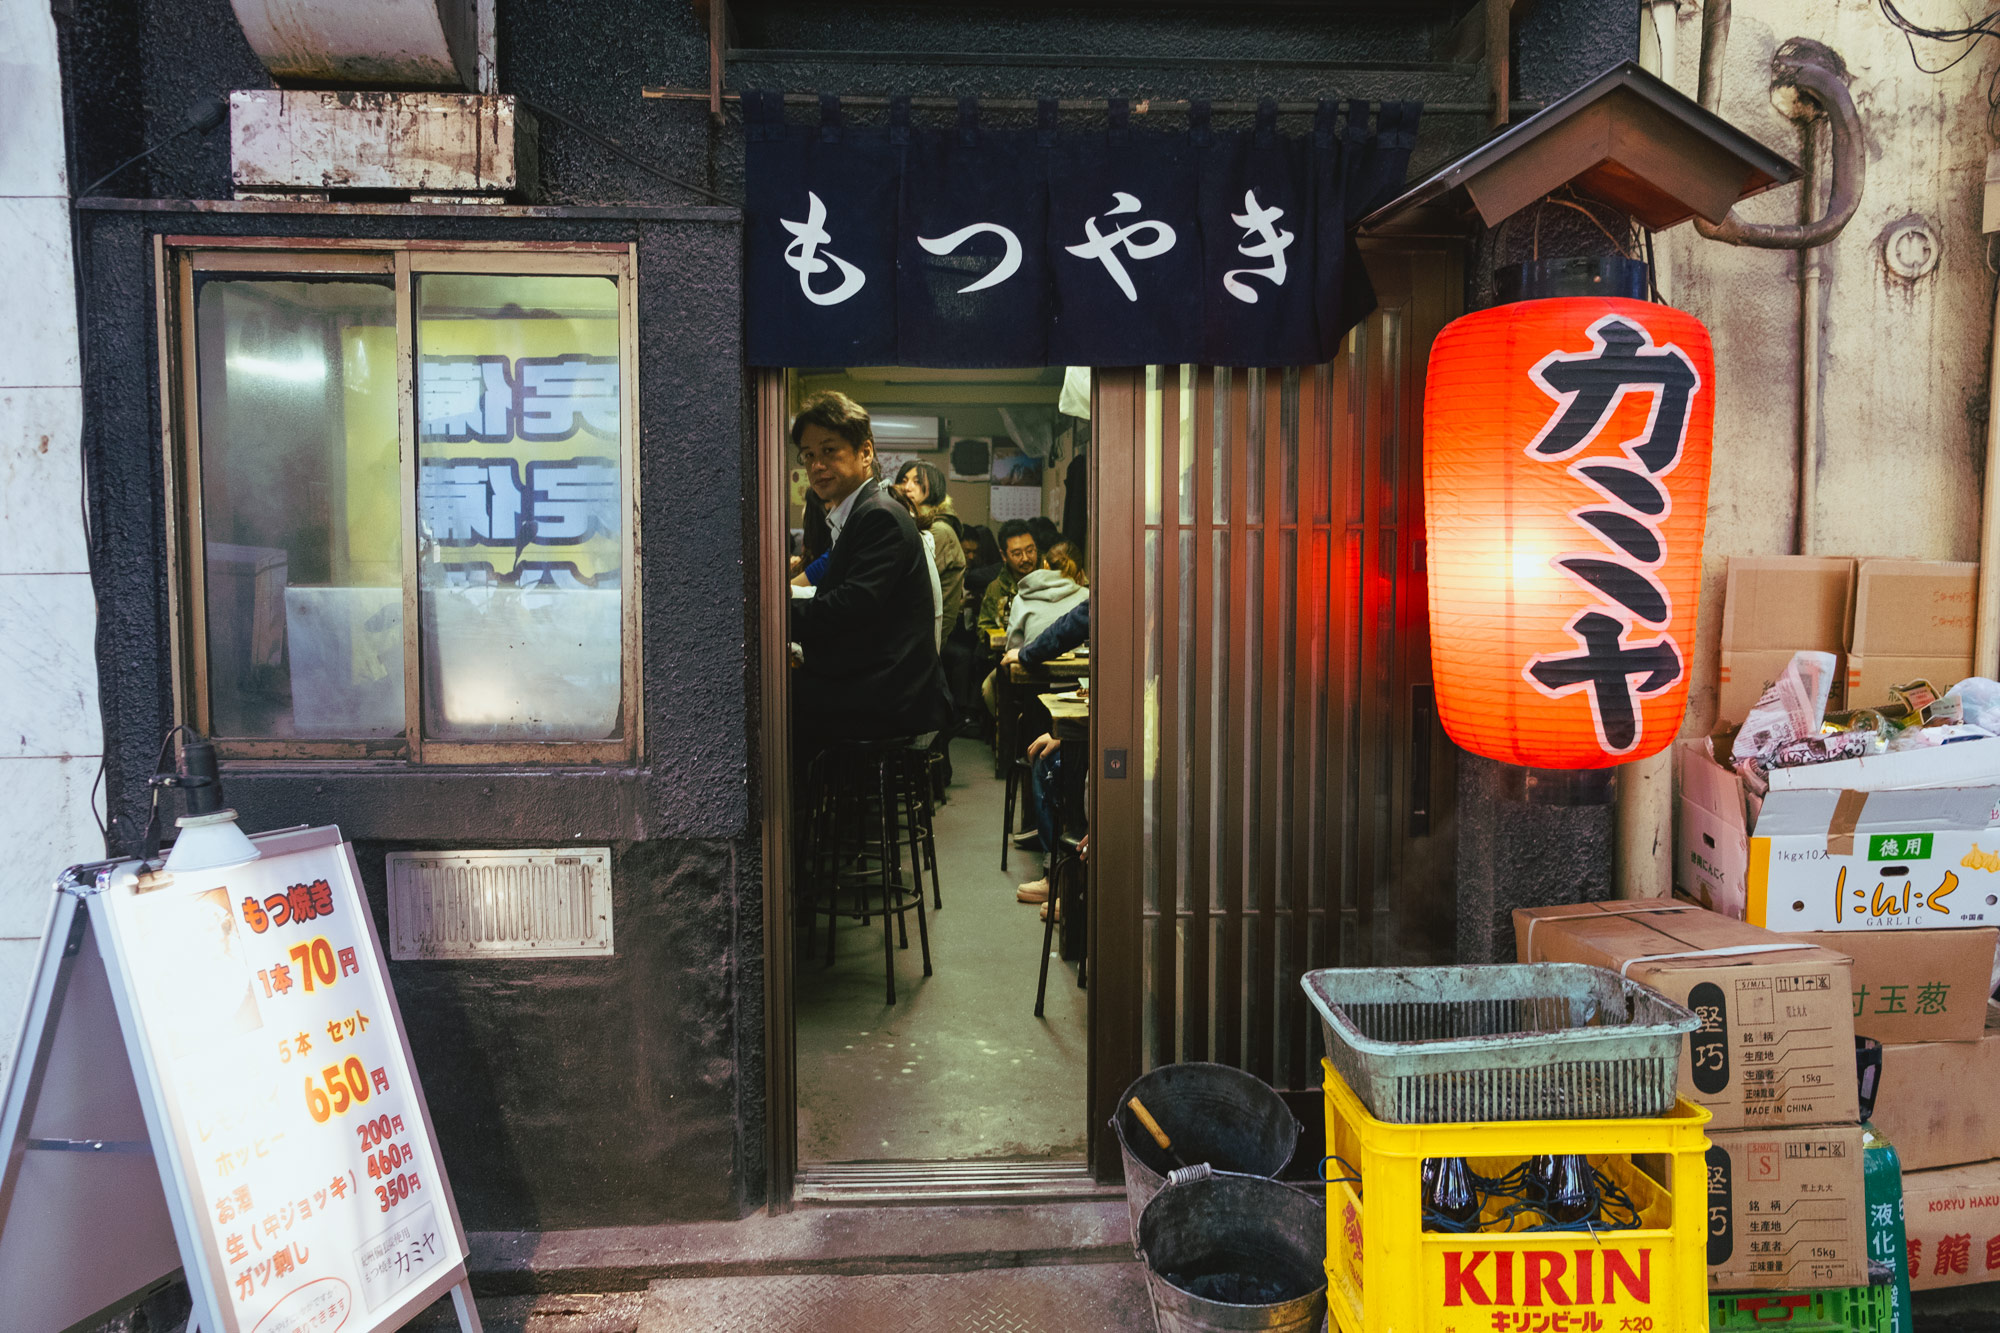 Curiously peeking inside a yakiniku restaurant